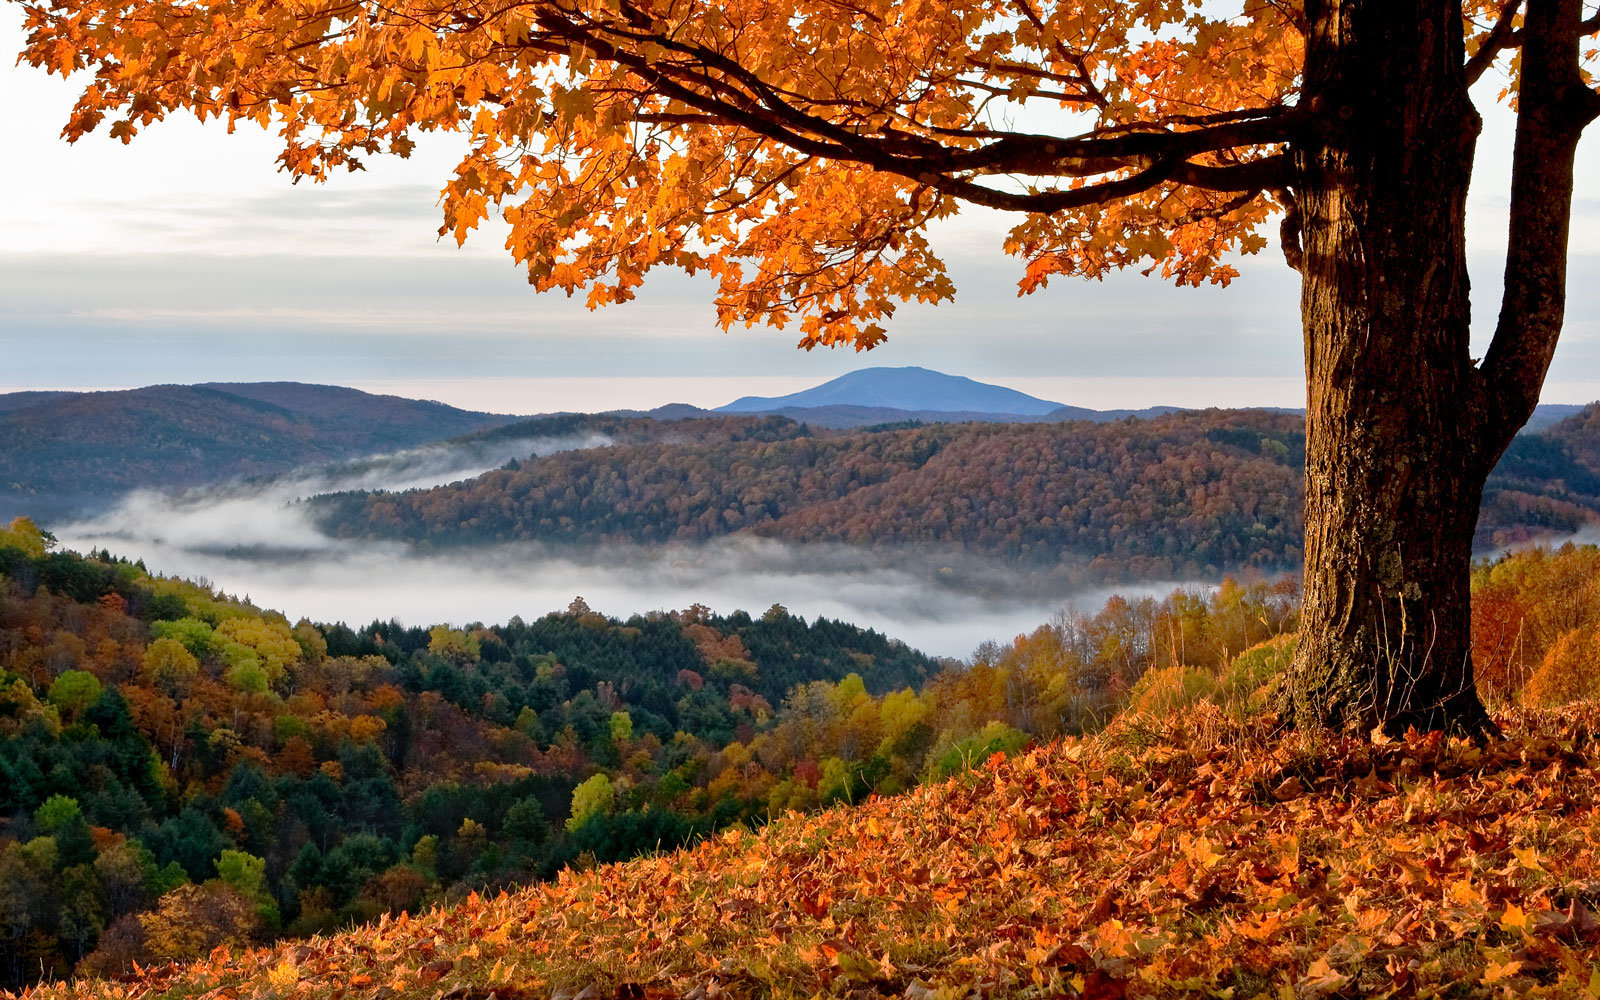 Fall in Vermont.